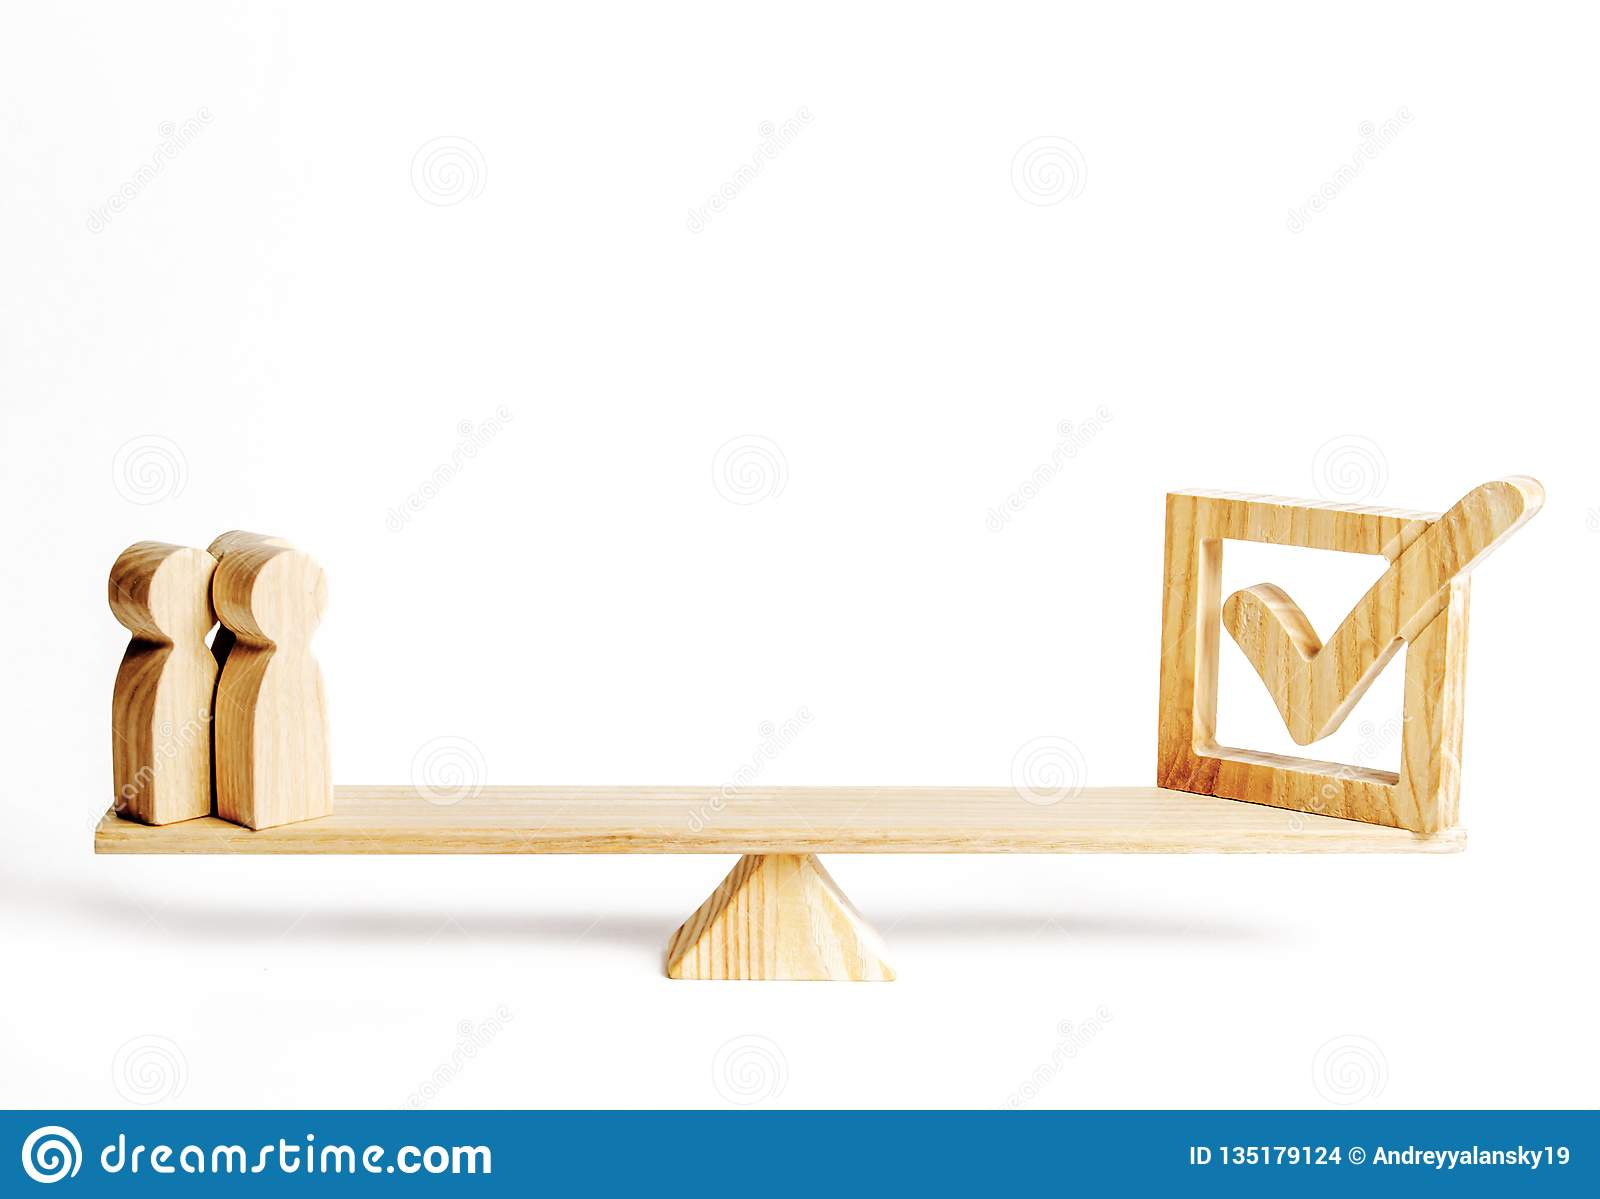 A group of wooden figures of people and wooden check mark on the scales. concept of political support, voting for laws